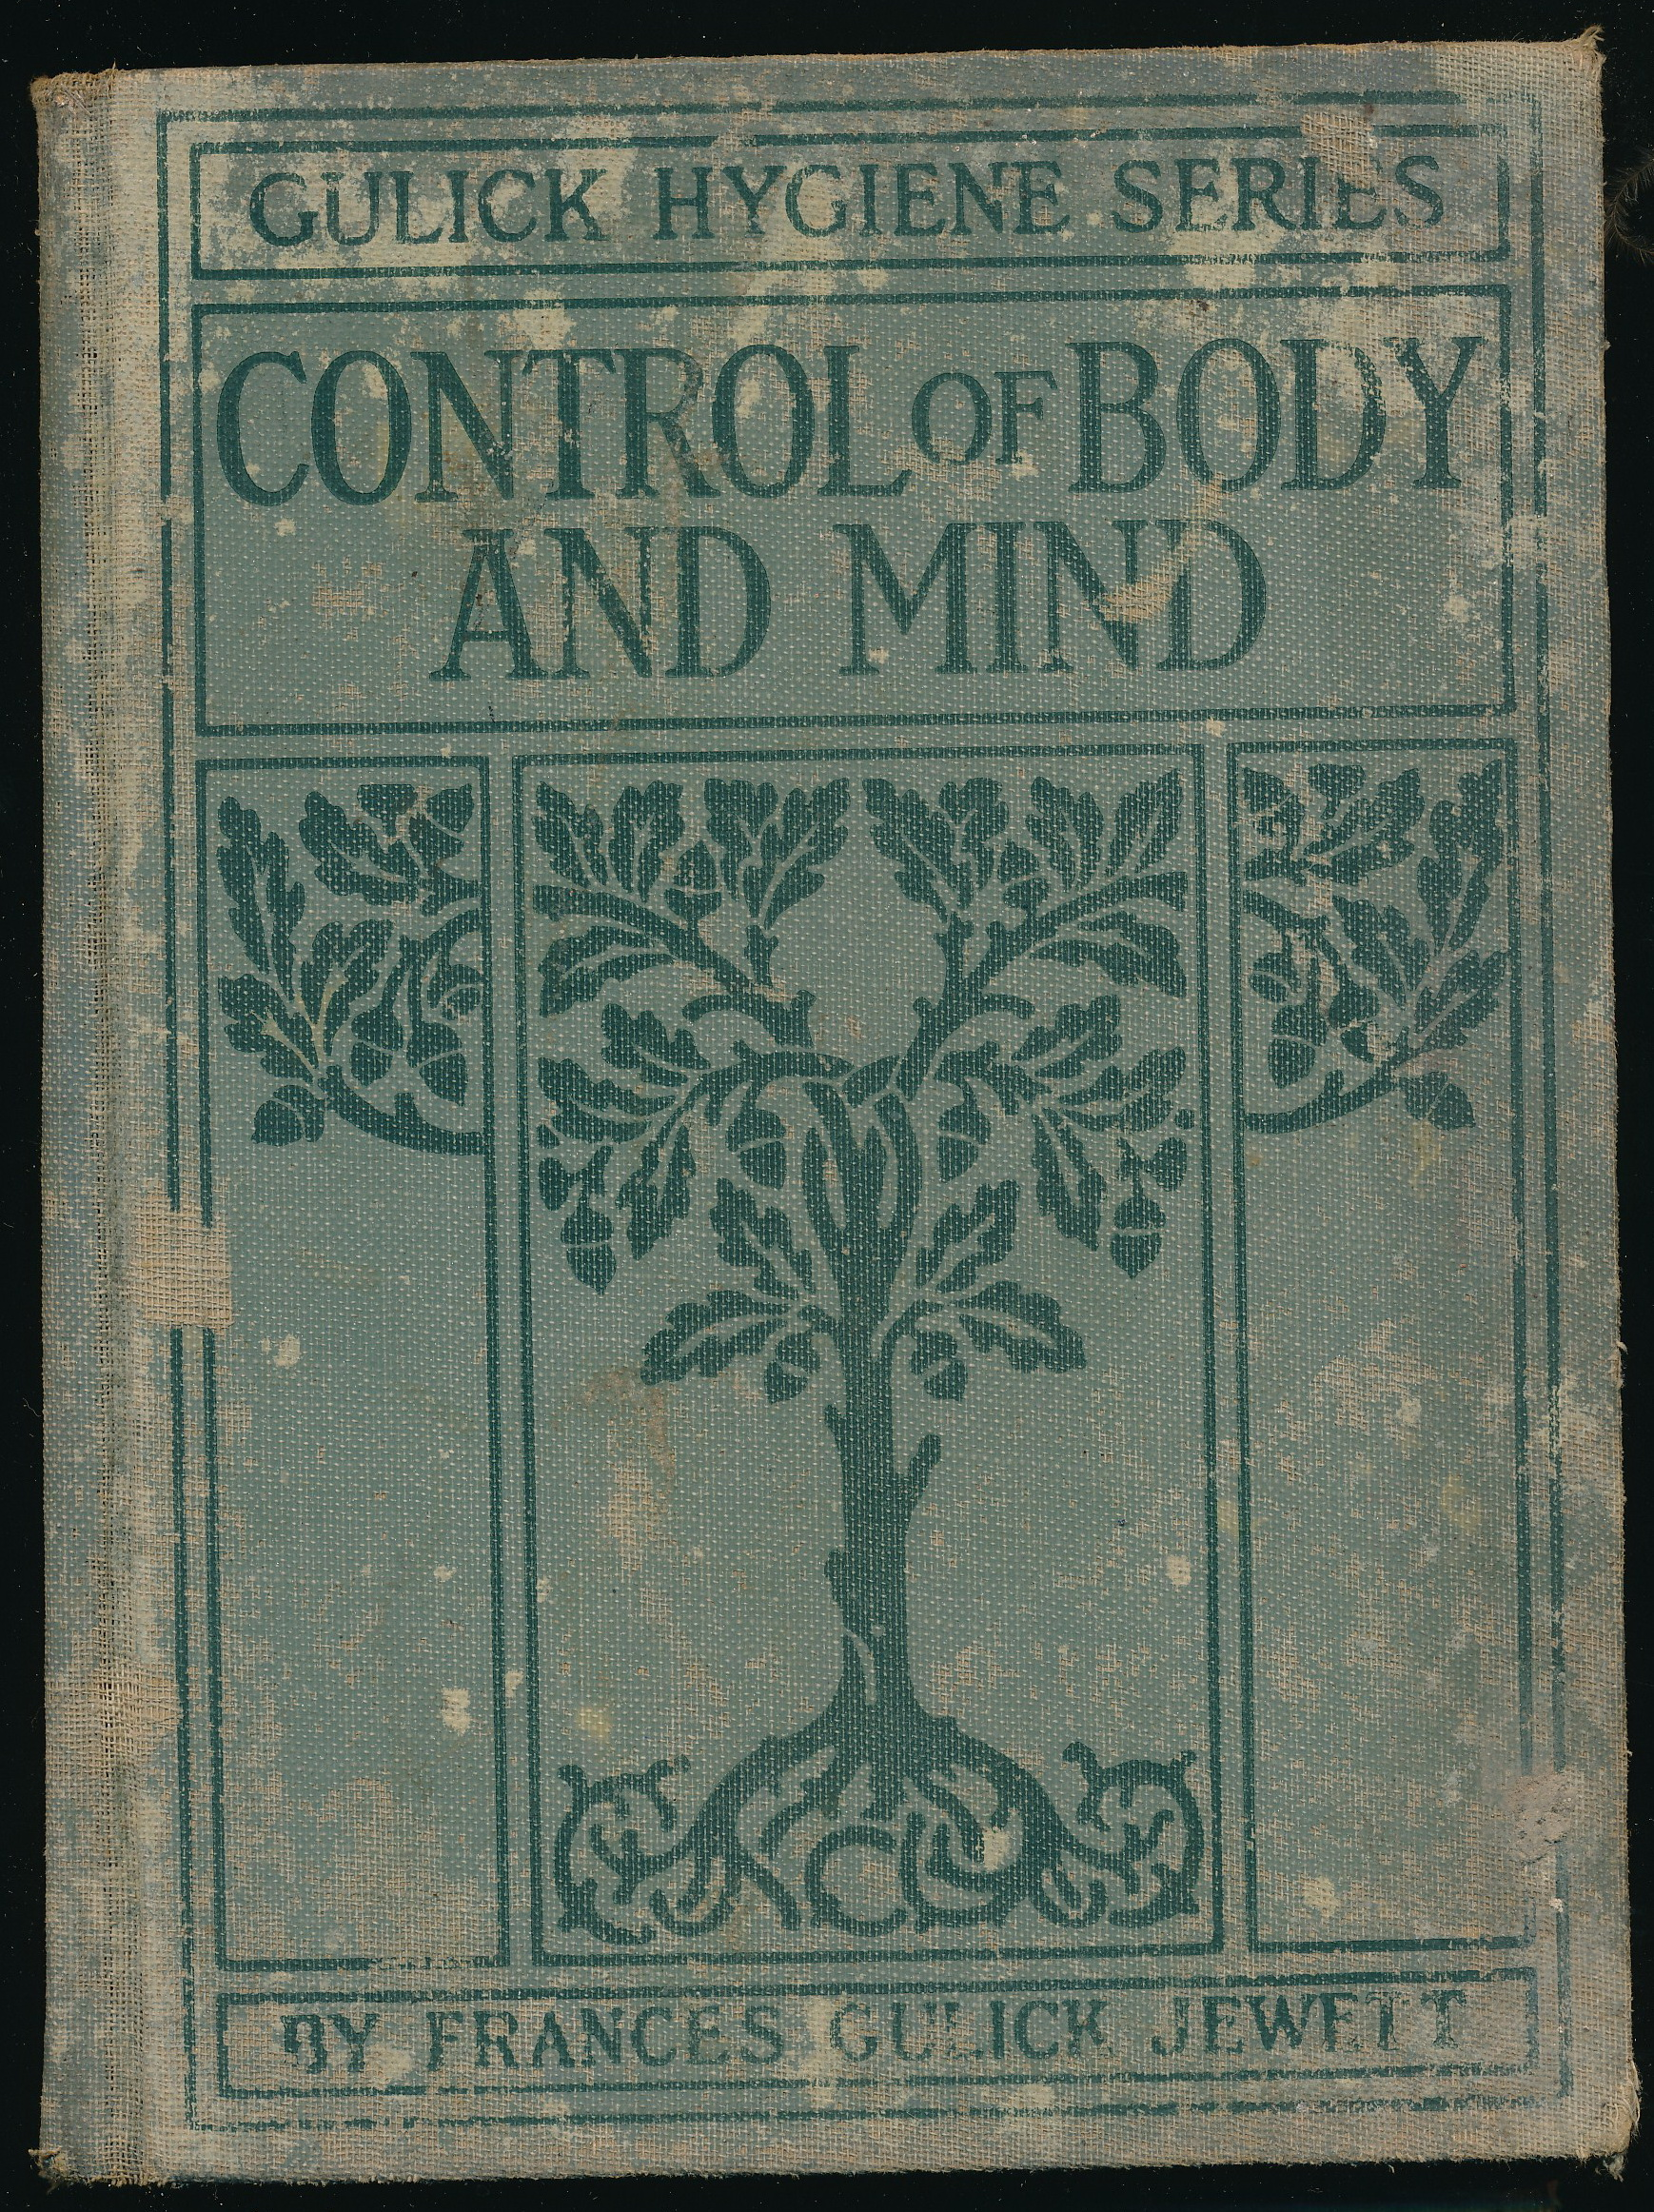 CONTROL OF BODY AND MIND